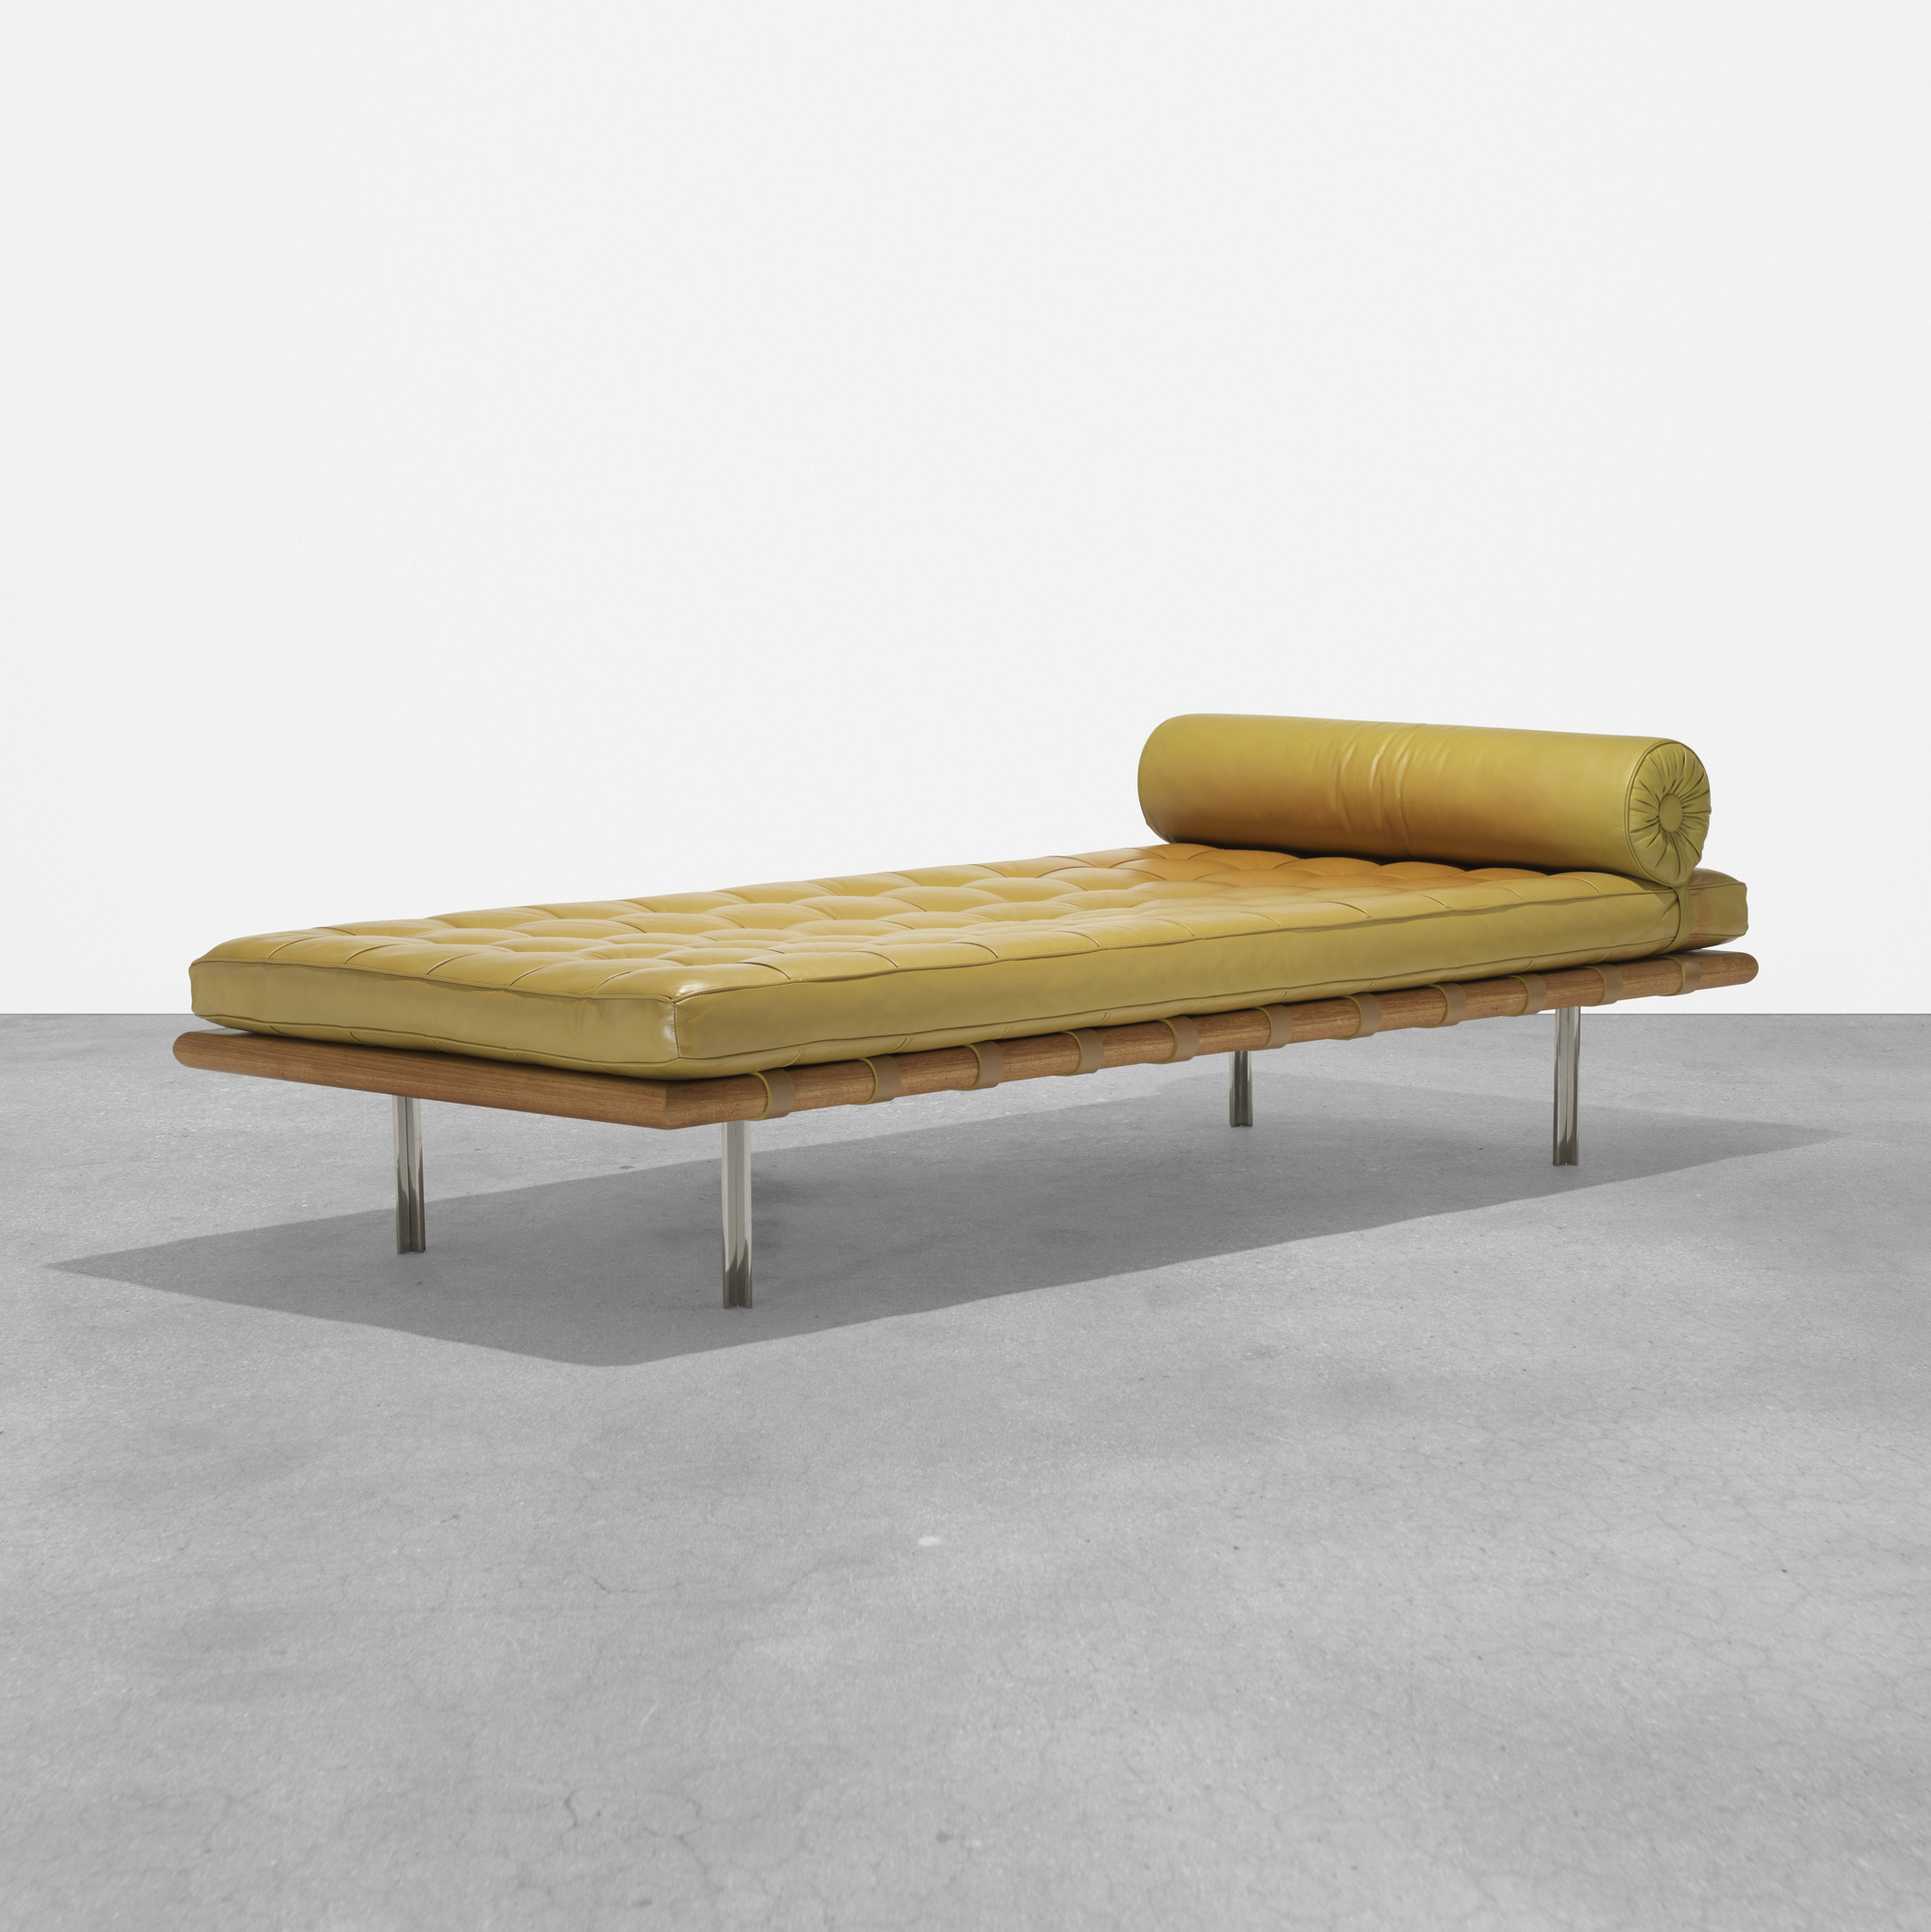 157 ludwig mies van der rohe barcelona daybed from 860 lake shore drive